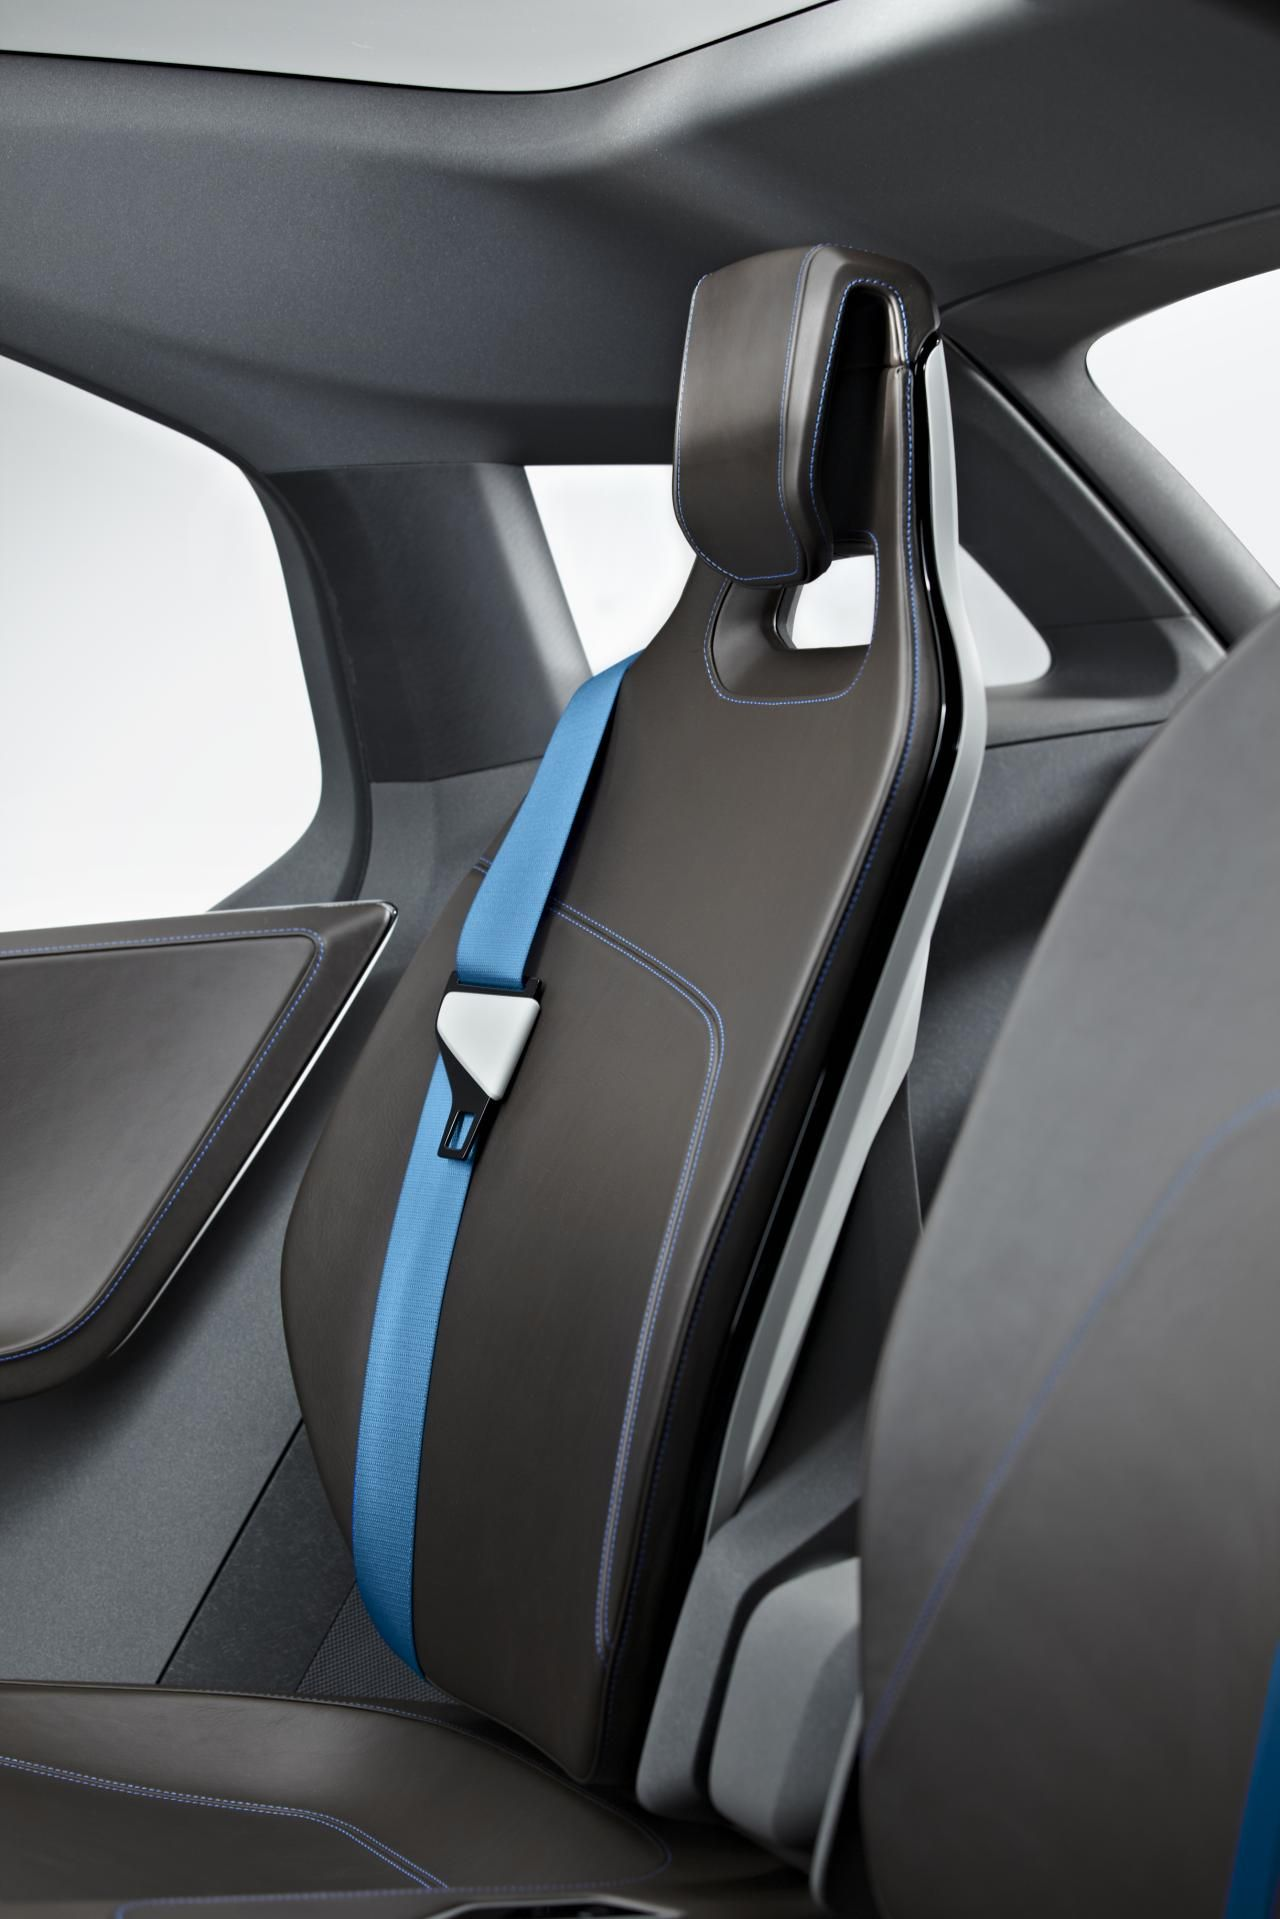 2011 BMW i3 Concept | < Transport > | Pinterest | Bmw i3, BMW and ...